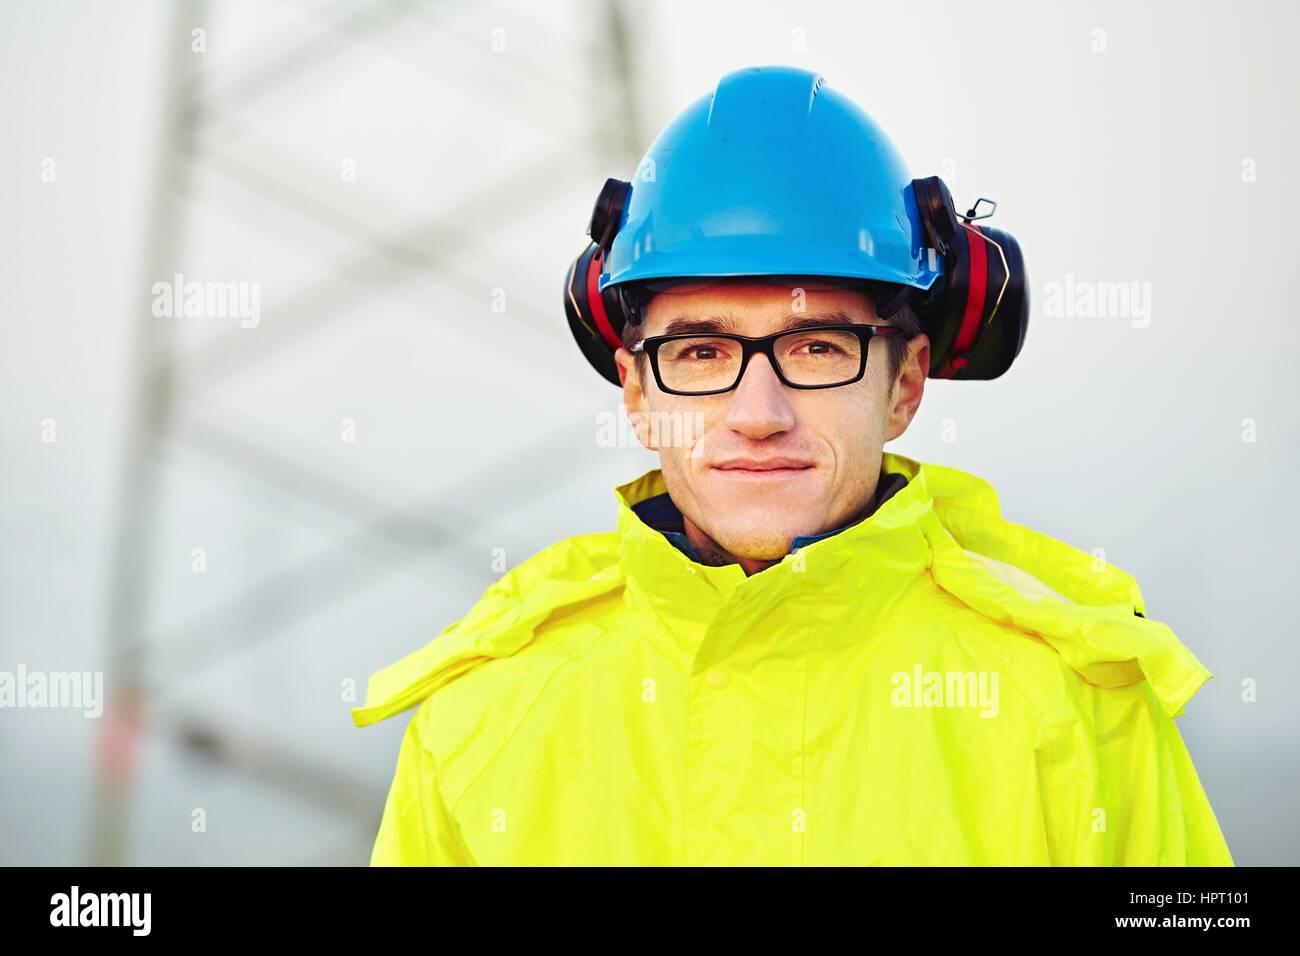 Worker wearing reflective clothing with helmet. - Stock Image